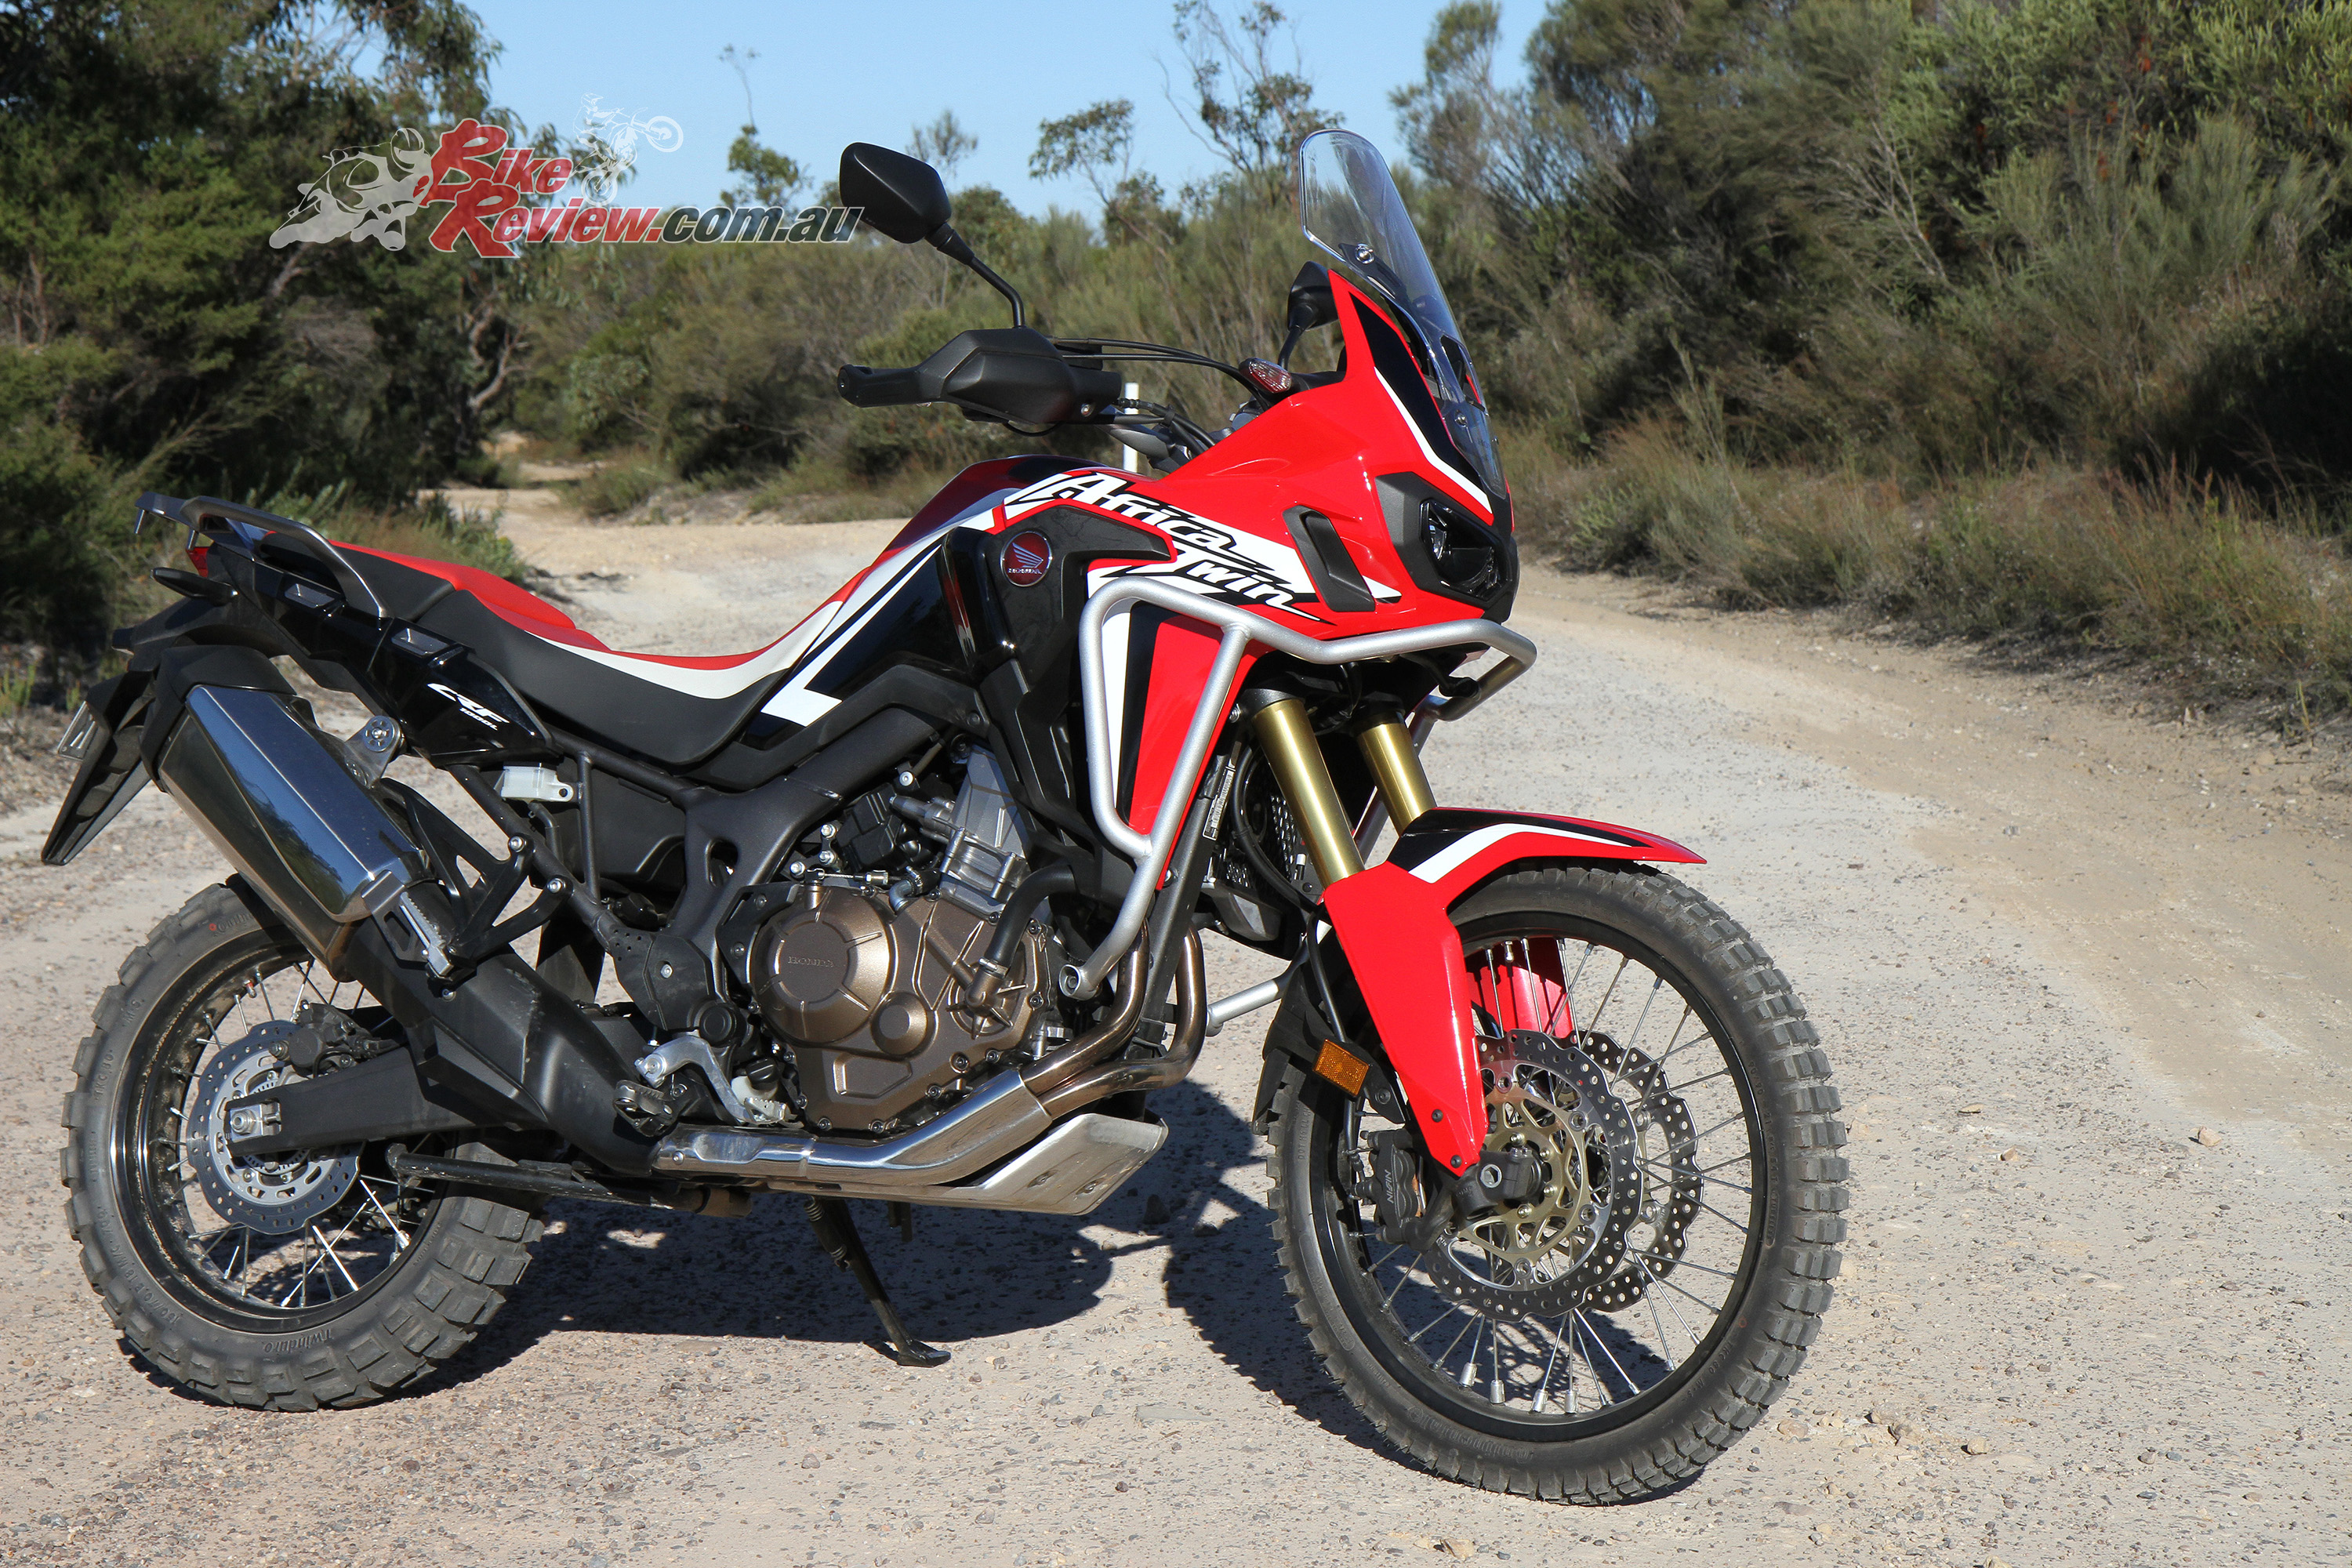 review 2016 honda crf1000la africa twin bike review. Black Bedroom Furniture Sets. Home Design Ideas